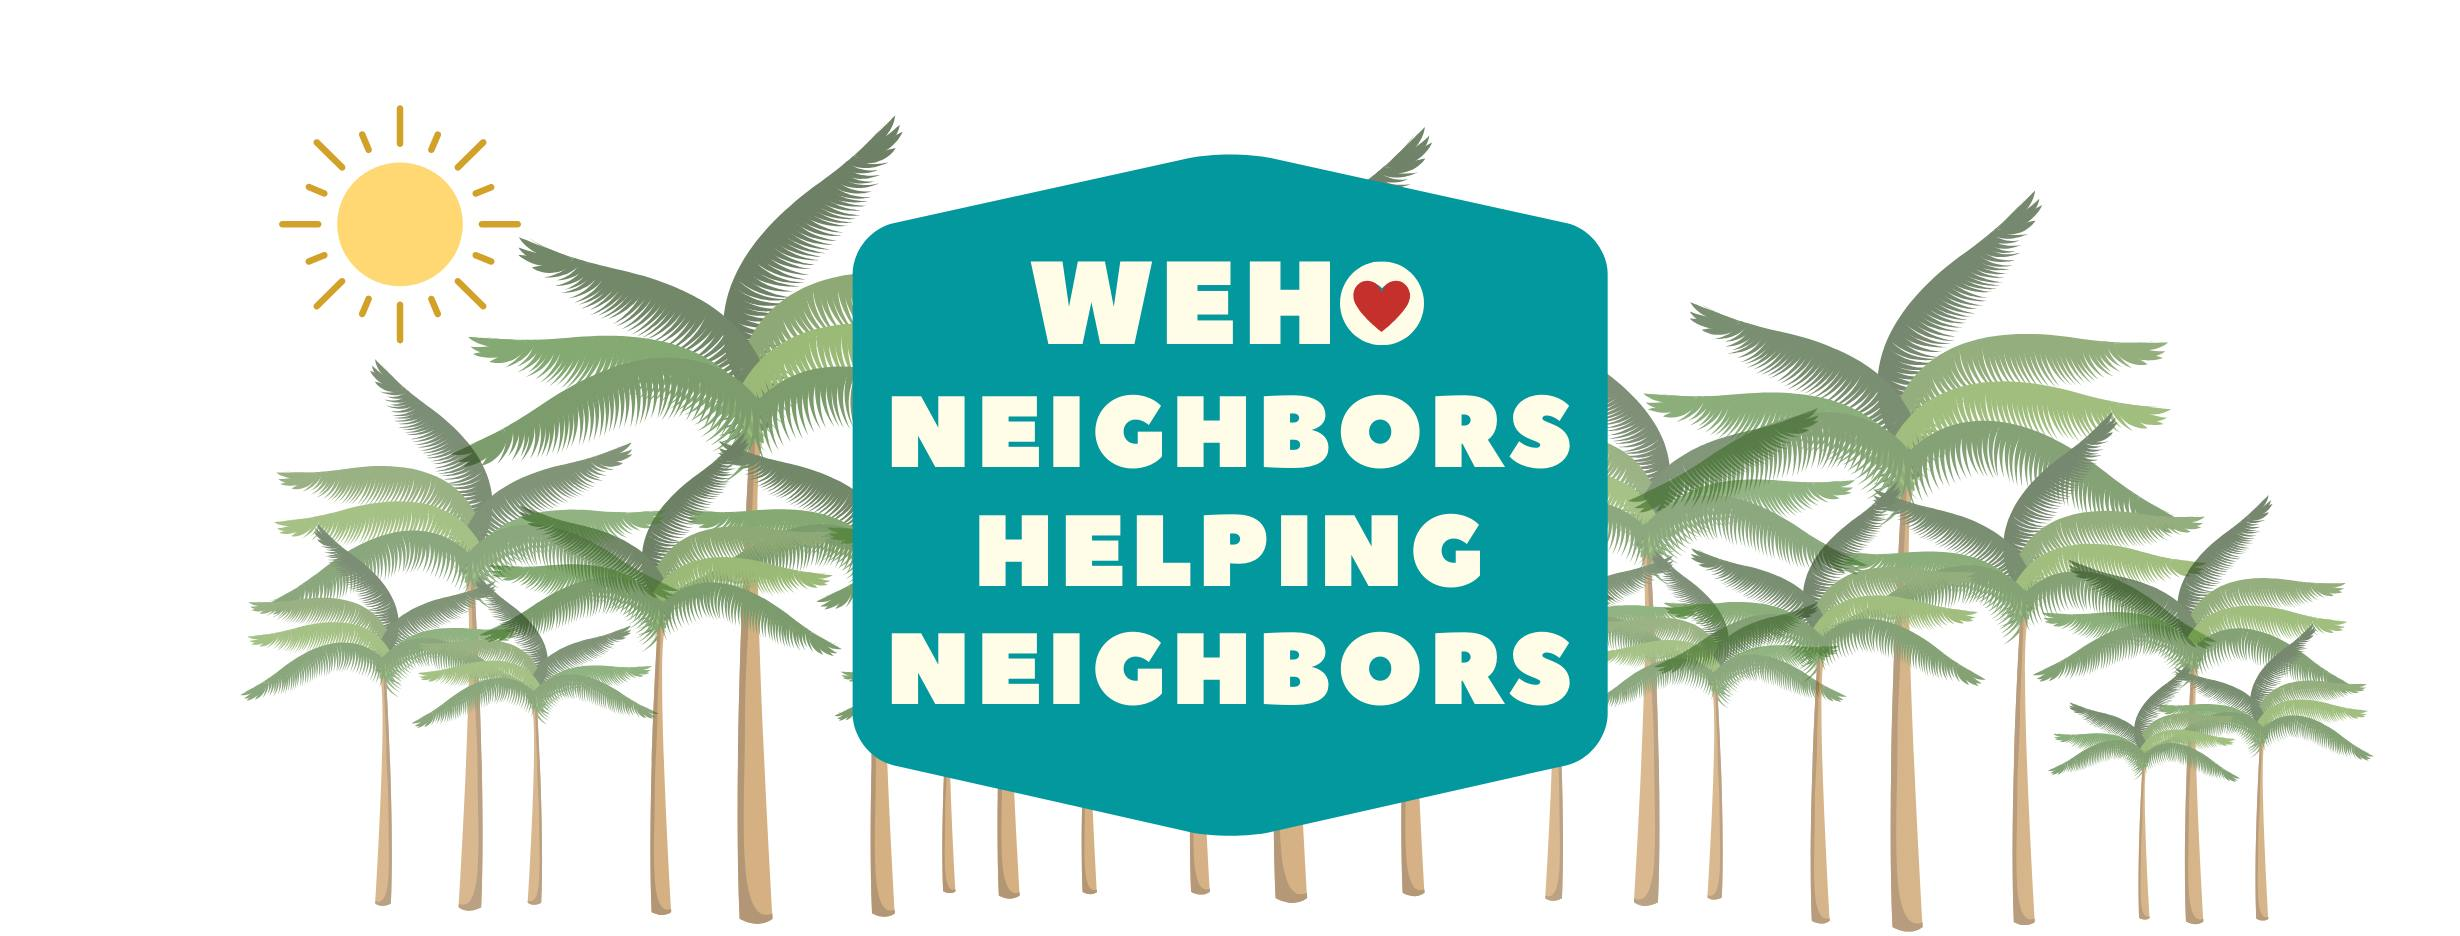 WeHo Neighbors Helping Neighbors green logo with palm trees in background